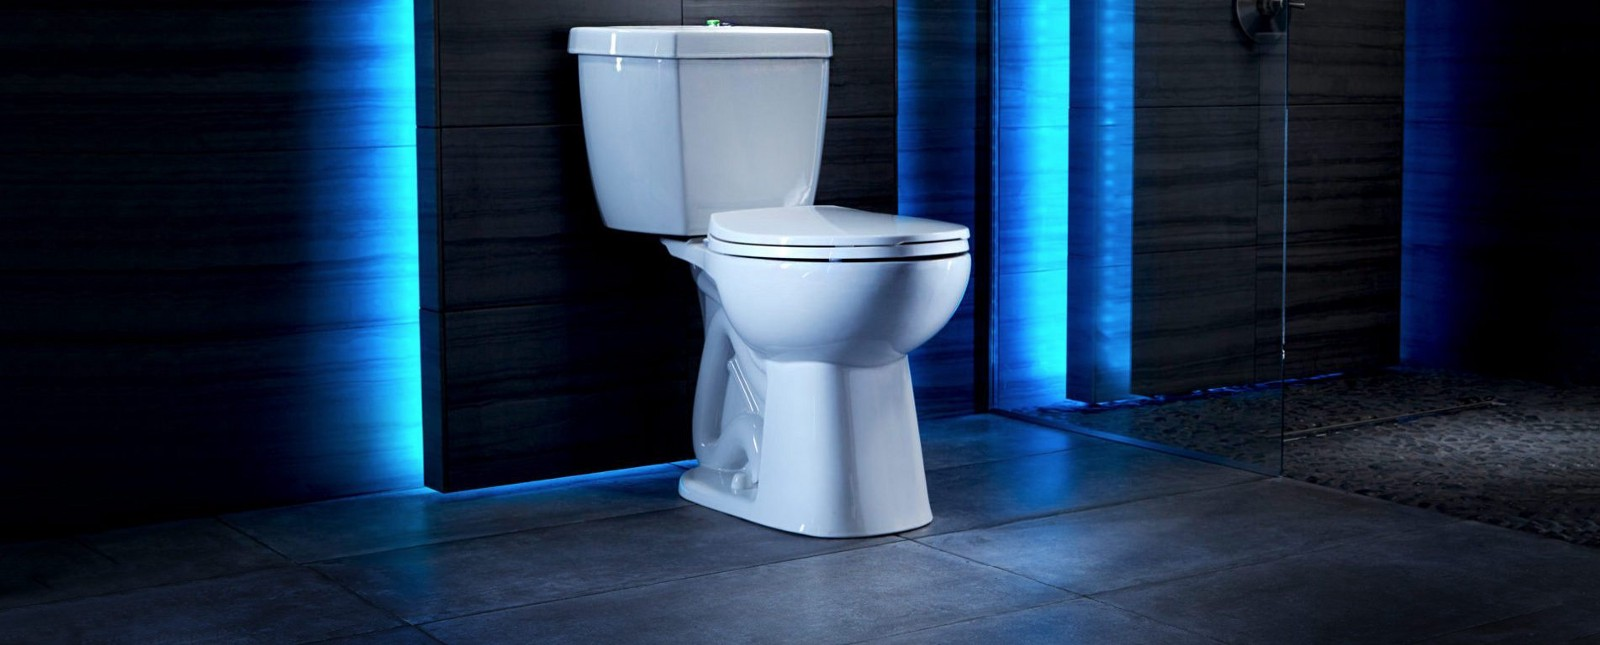 The Top 10 Bathroom Trends Given a Green Makeover – Elemental Green ...